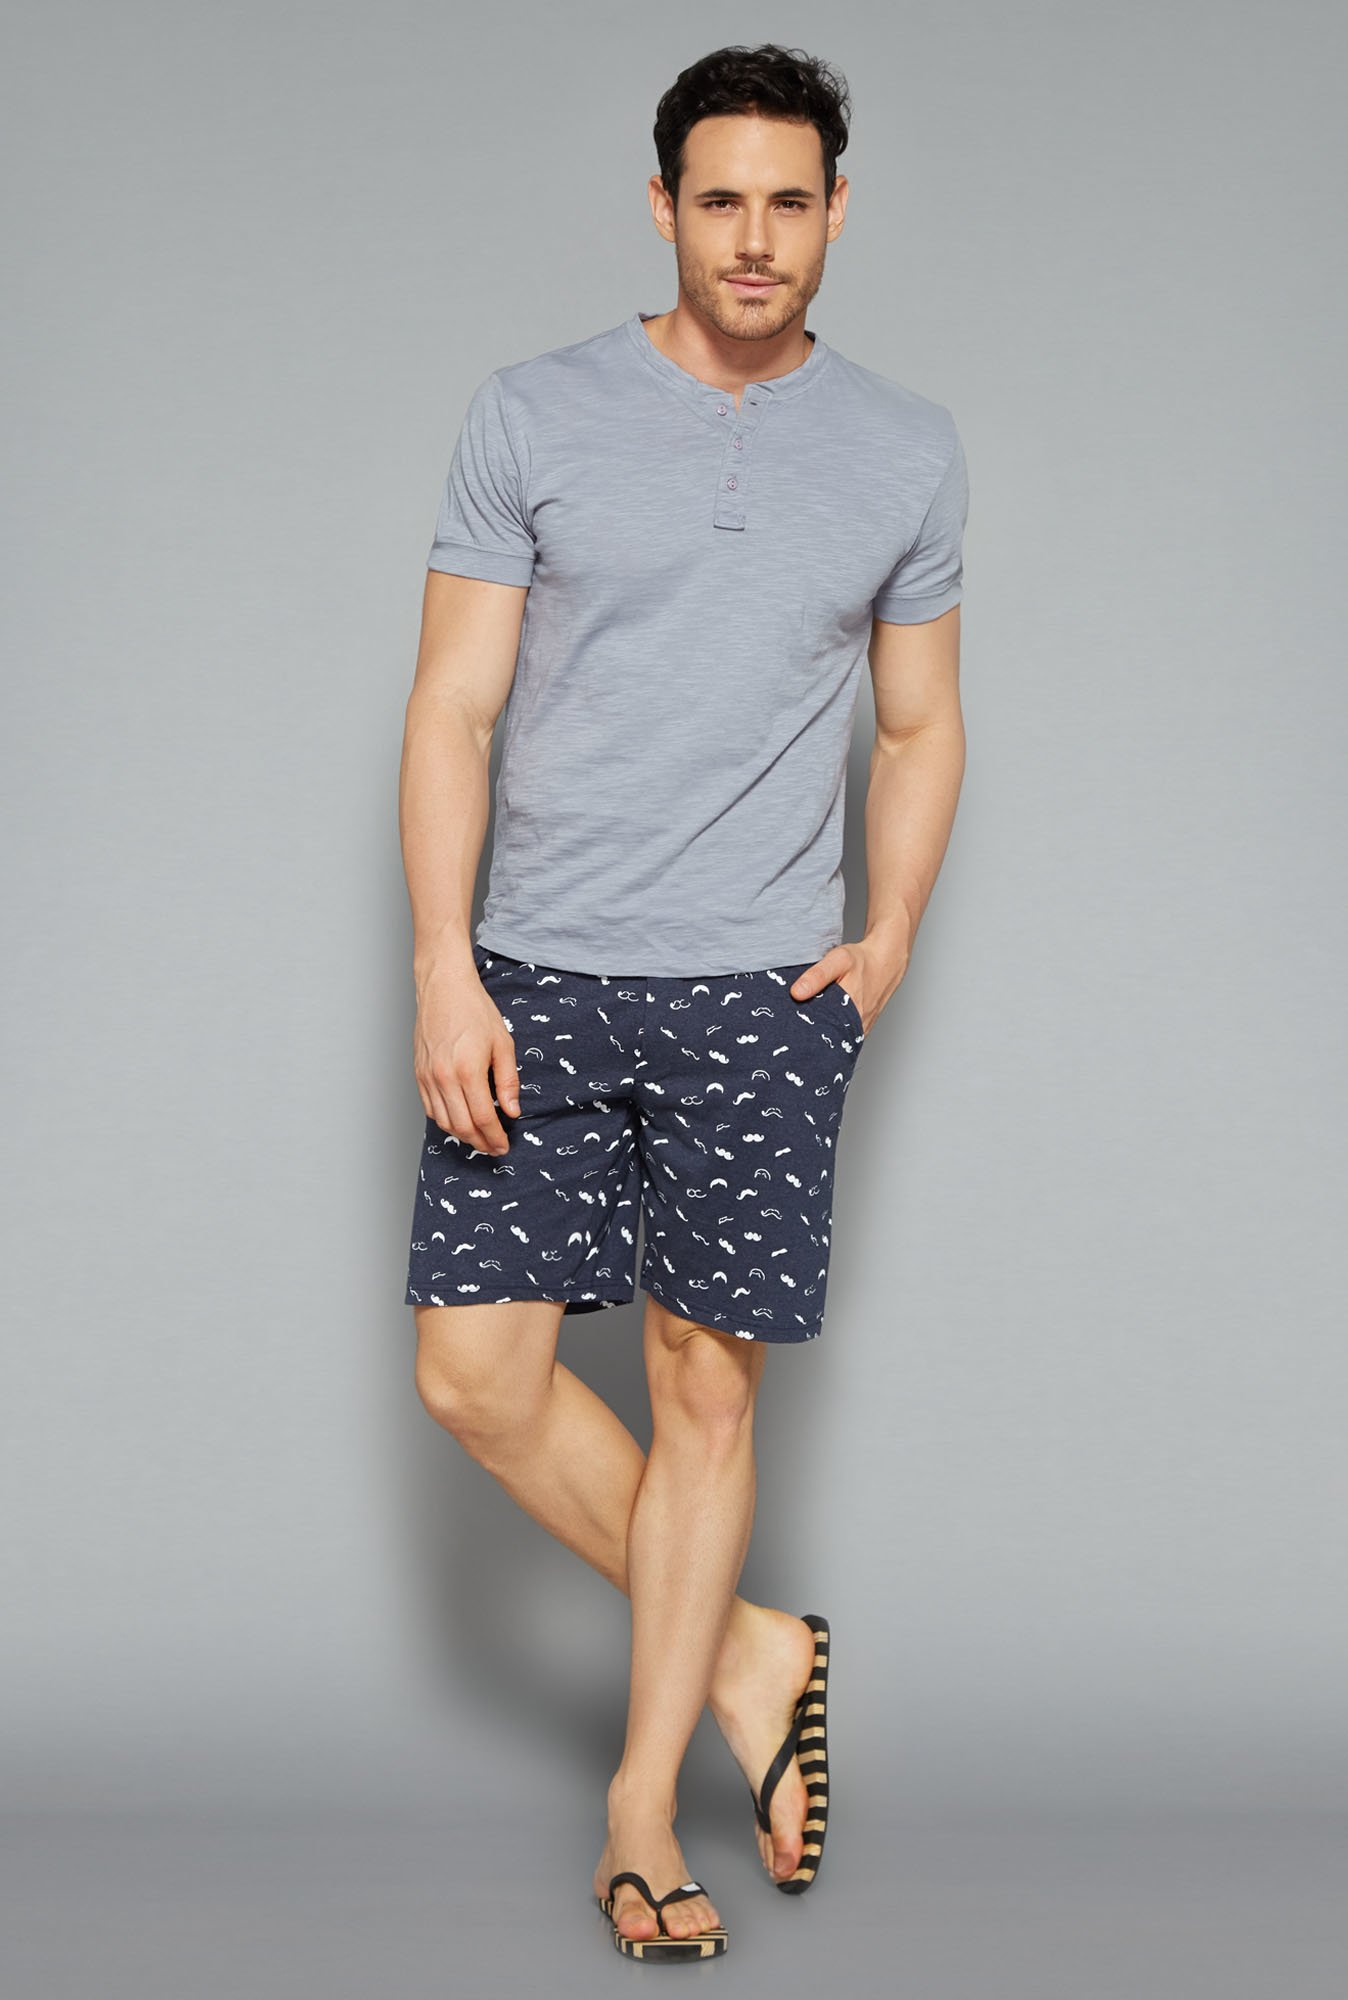 Bodybasics by Westside Navy Printed Shorts